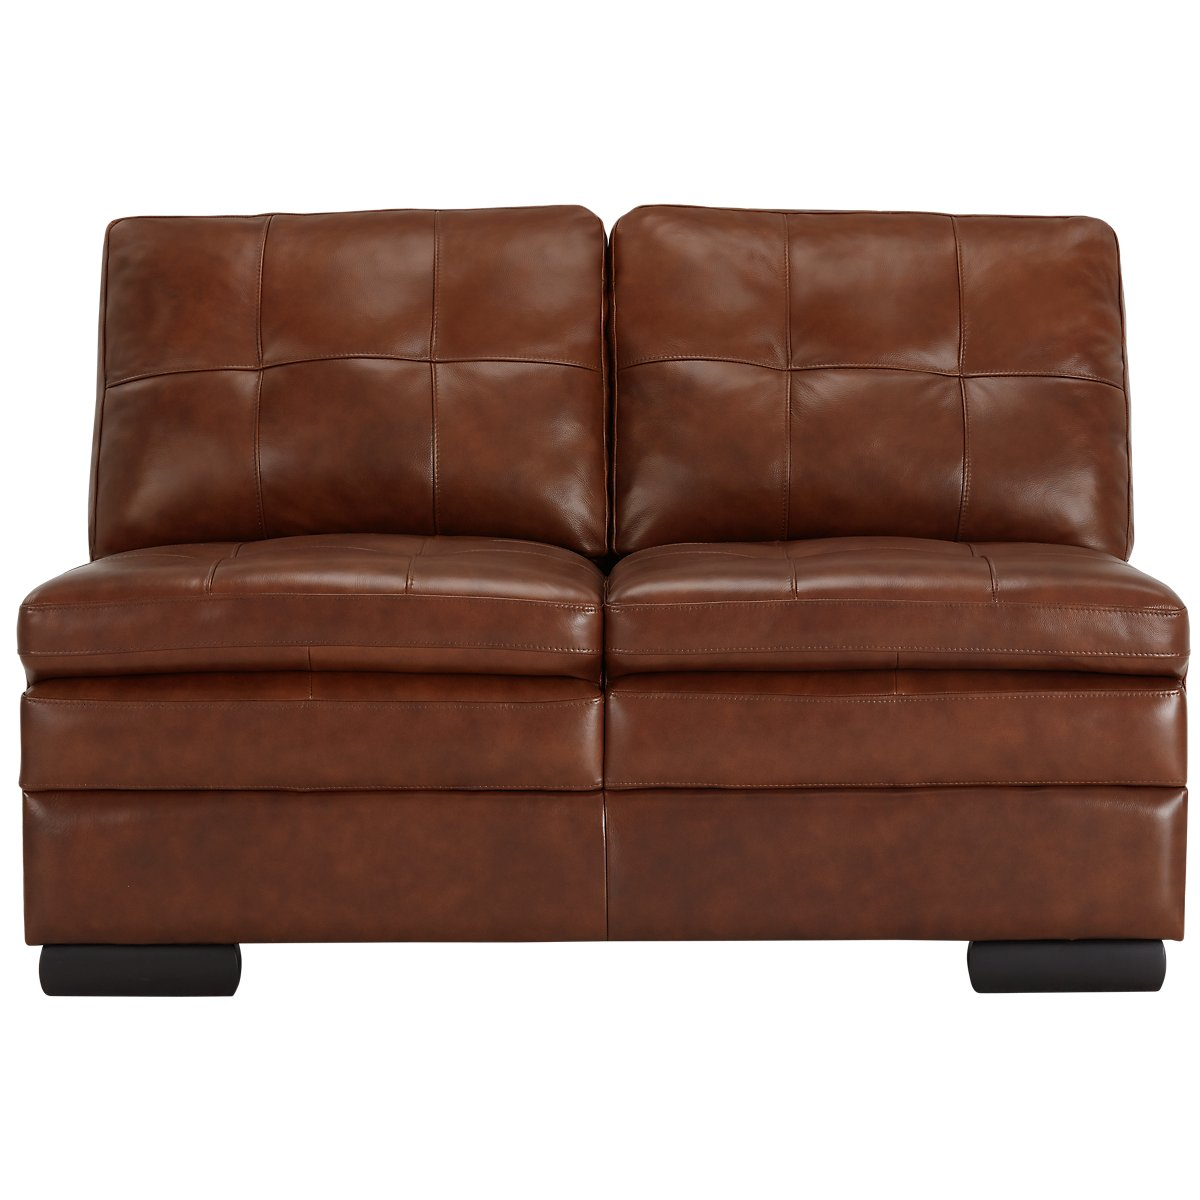 City furniture trevor medium brown leather small right for Brown leather sectional with chaise